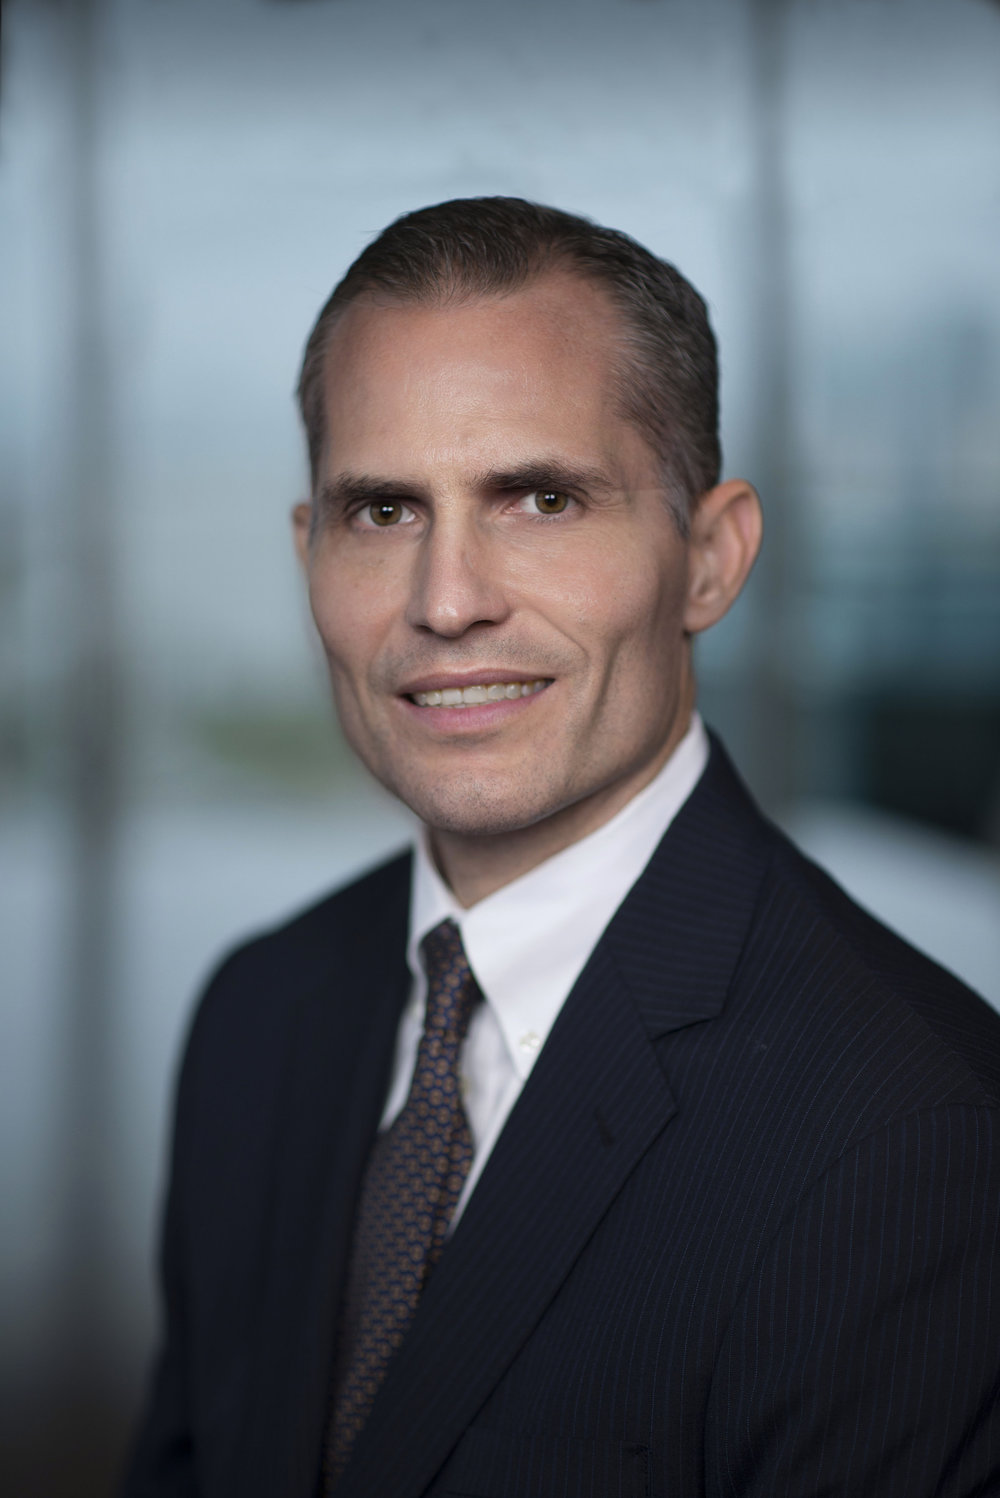 Paul Roman—Vice President and General Manager of Global Commercial Payments